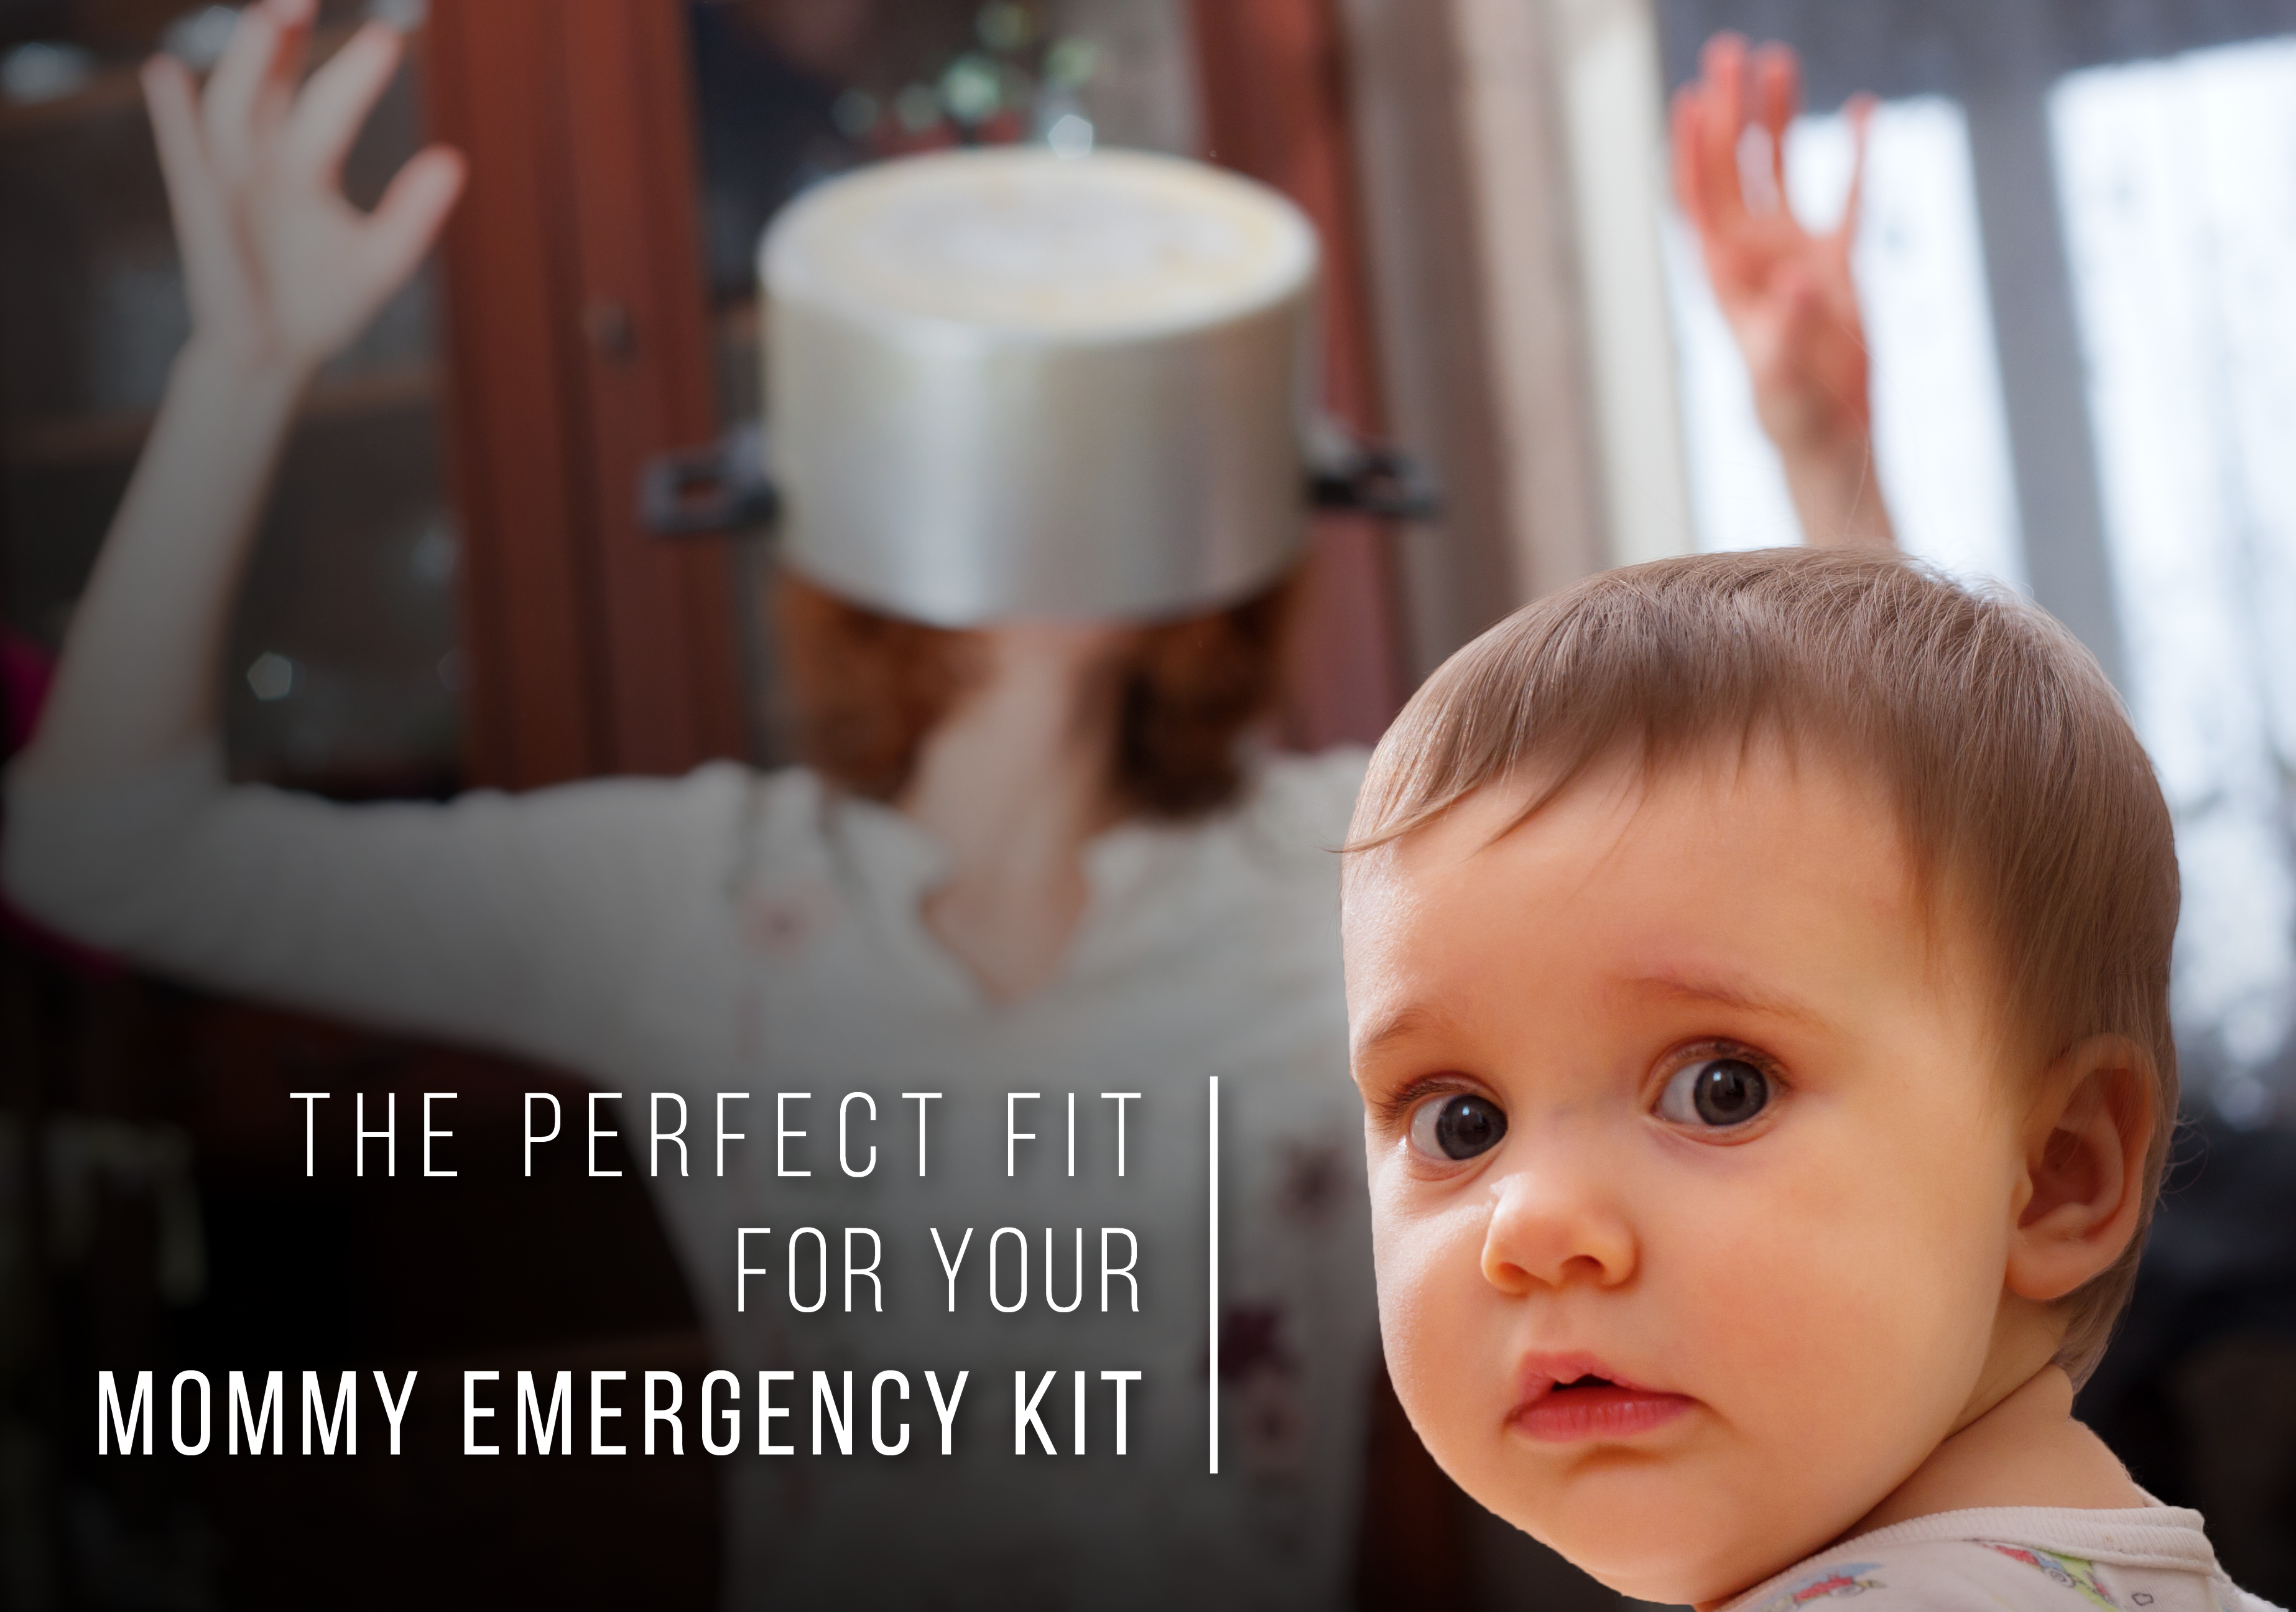 CBD is The Perfect Fit for Your Mommy Emergency Kit